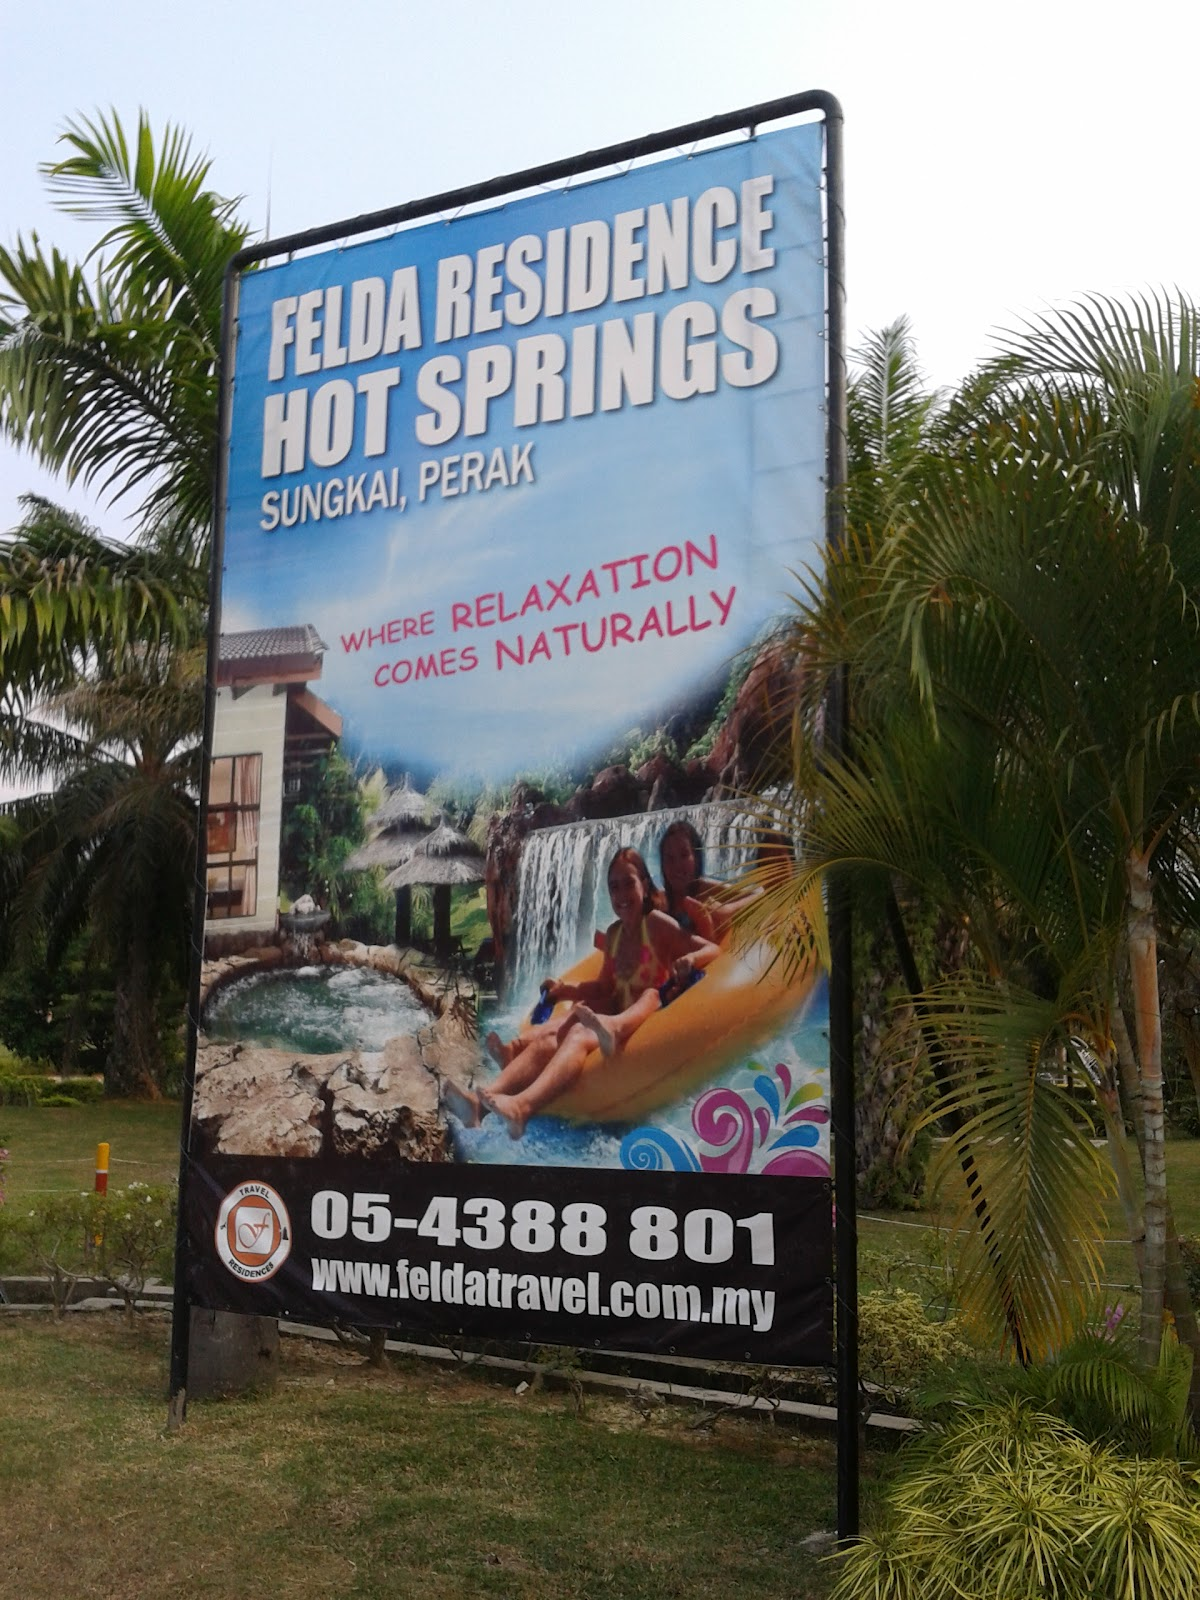 Sungai klah hot springs - If You Are Wondering The Phone Number And Website Google Images